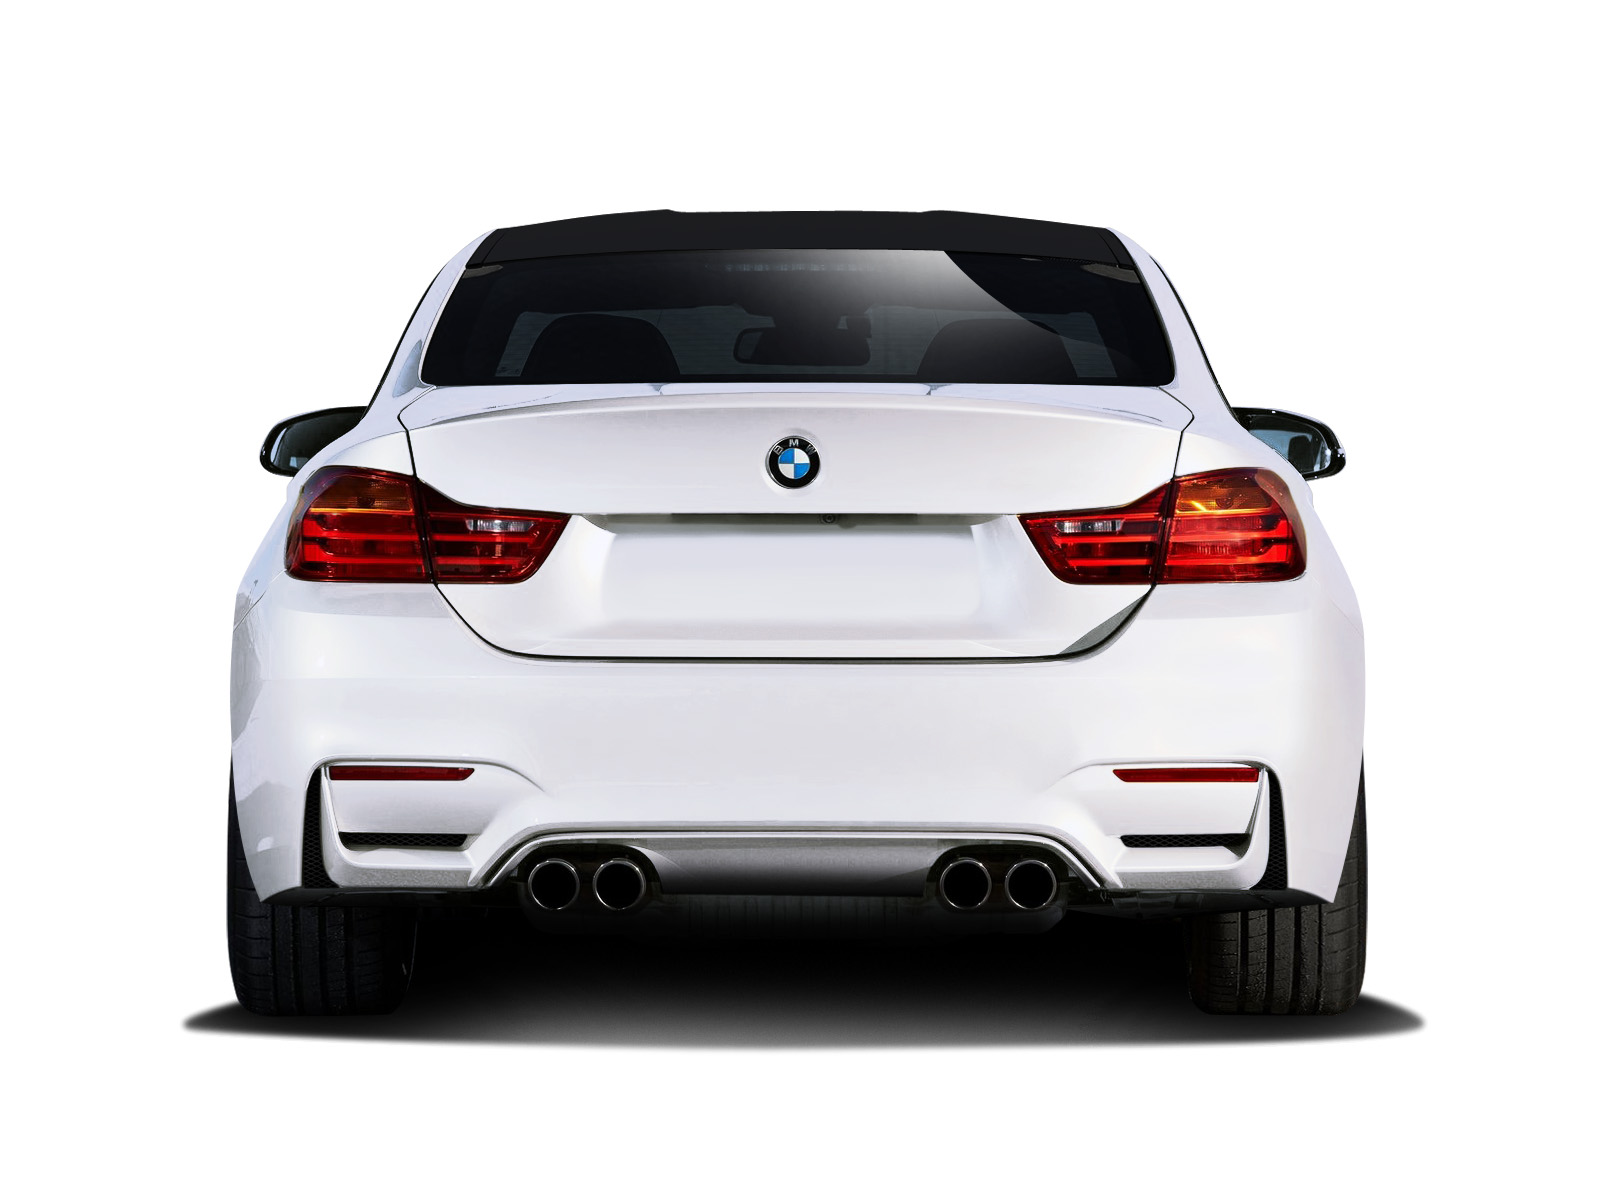 2014 2016 BMW 4 Series F32 Couture Urethane M4 Look Rear Bumper Body Kit 6928366005054